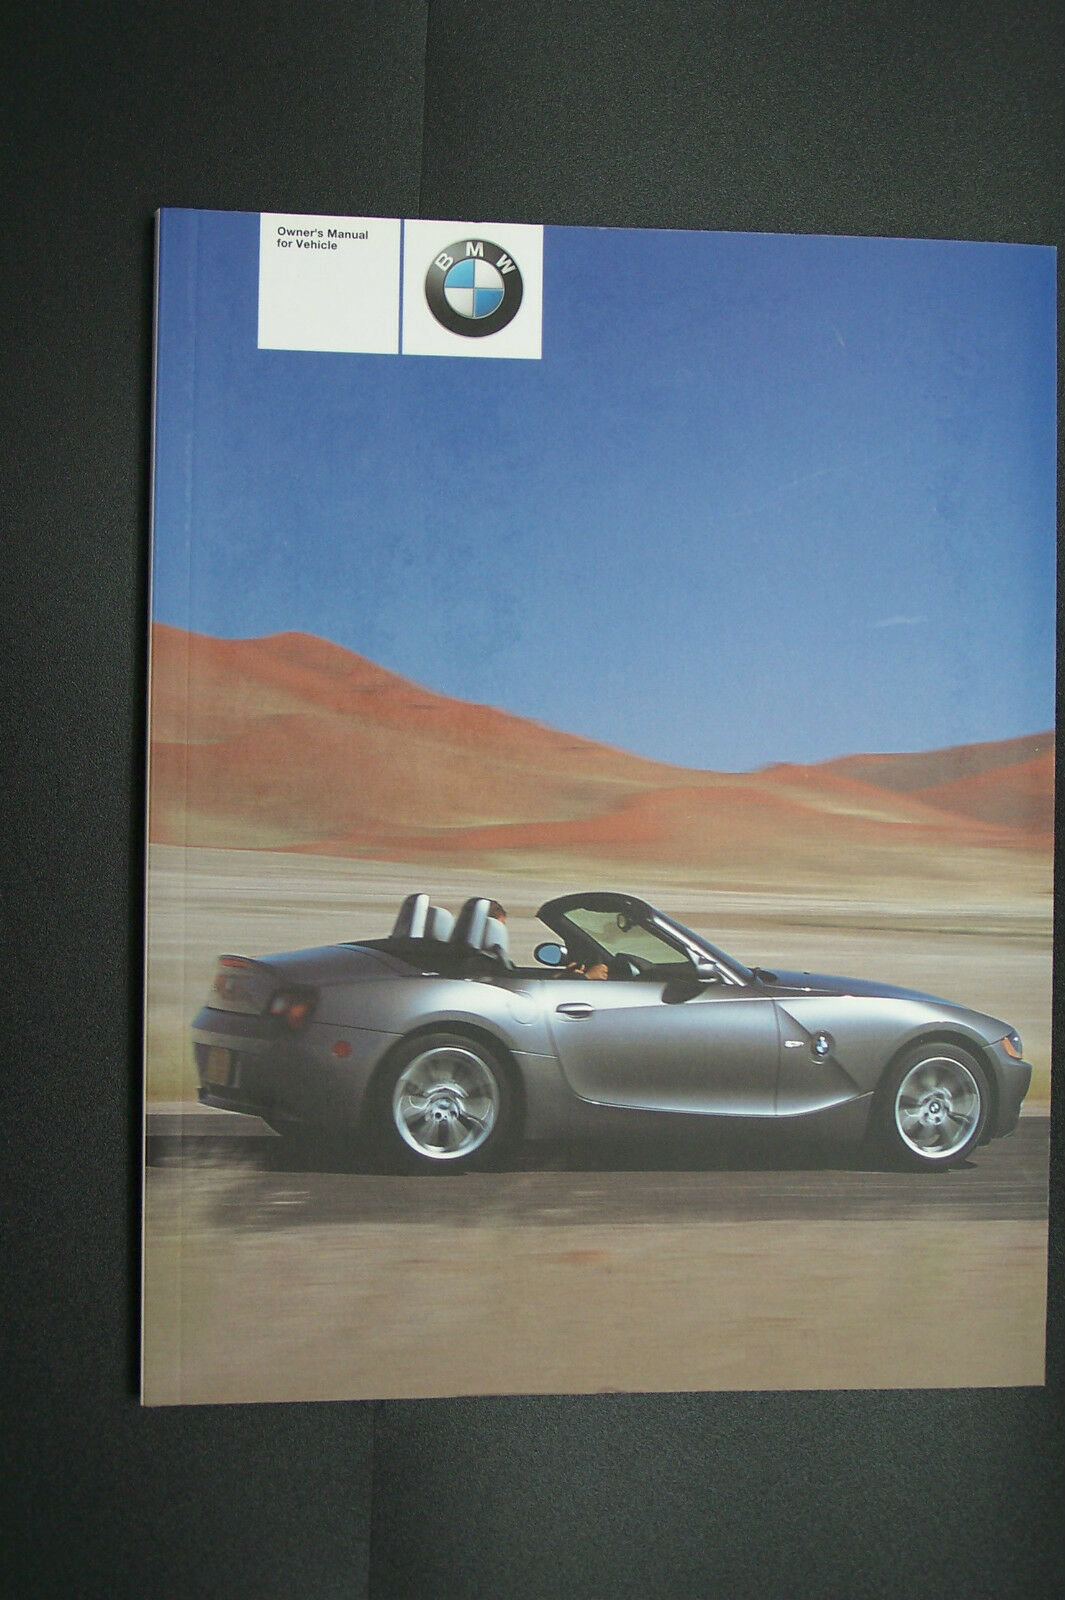 2004 bmw z4 owners manual new original e85 e86 74 88 picclick uk rh picclick co uk E85 Z4 Wing Z4m E85